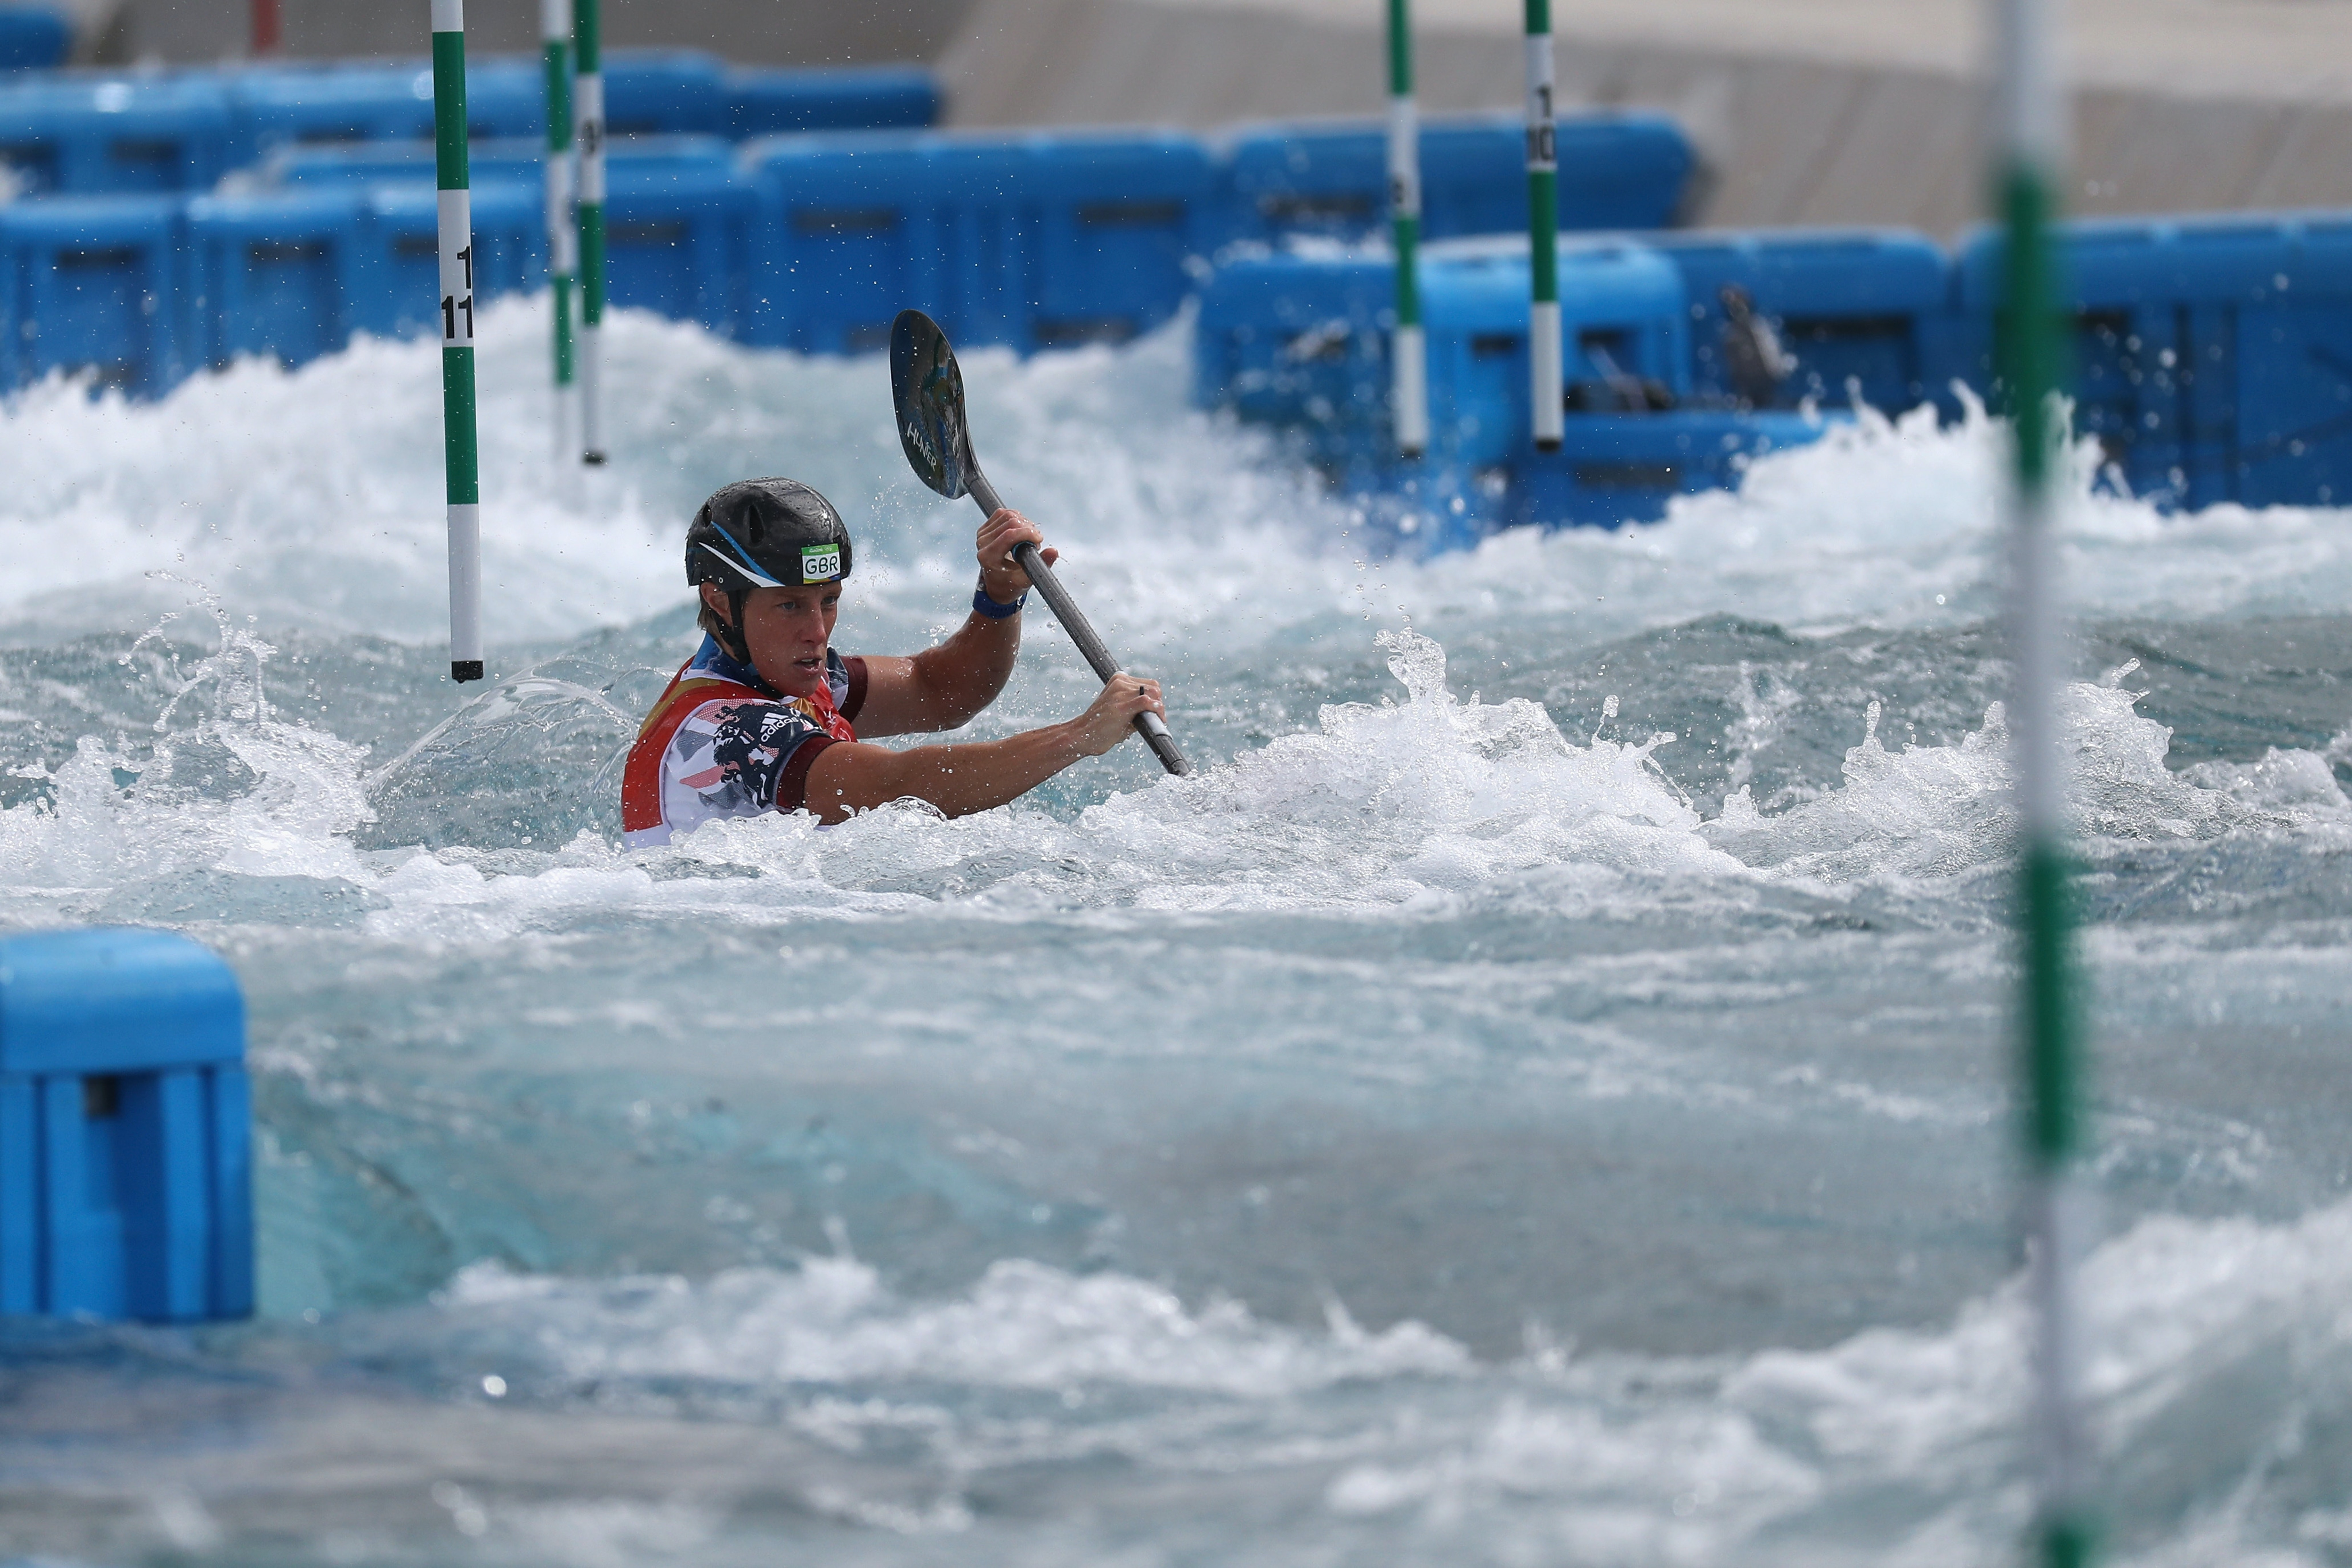 Fiona Pennie of Great Britain during the Women's Kayak Semi-final in Rio.